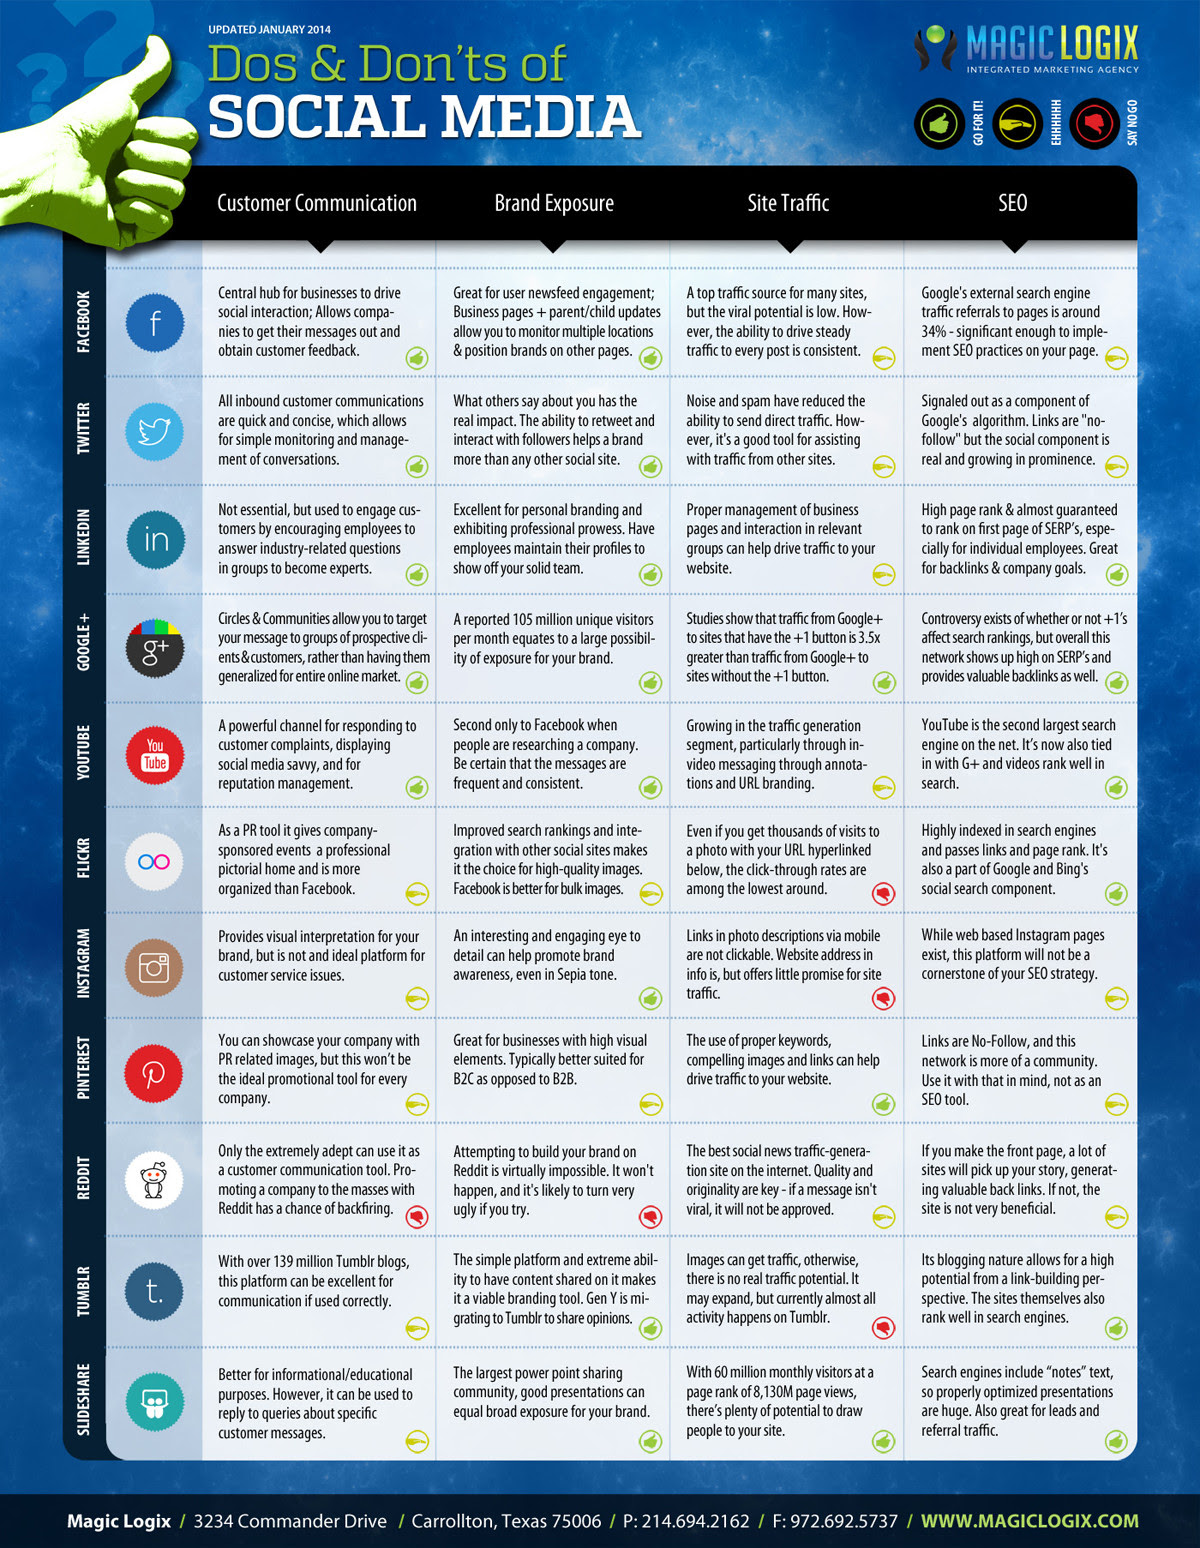 2014 Social Media Do's and Don'ts for busiensses - infographic